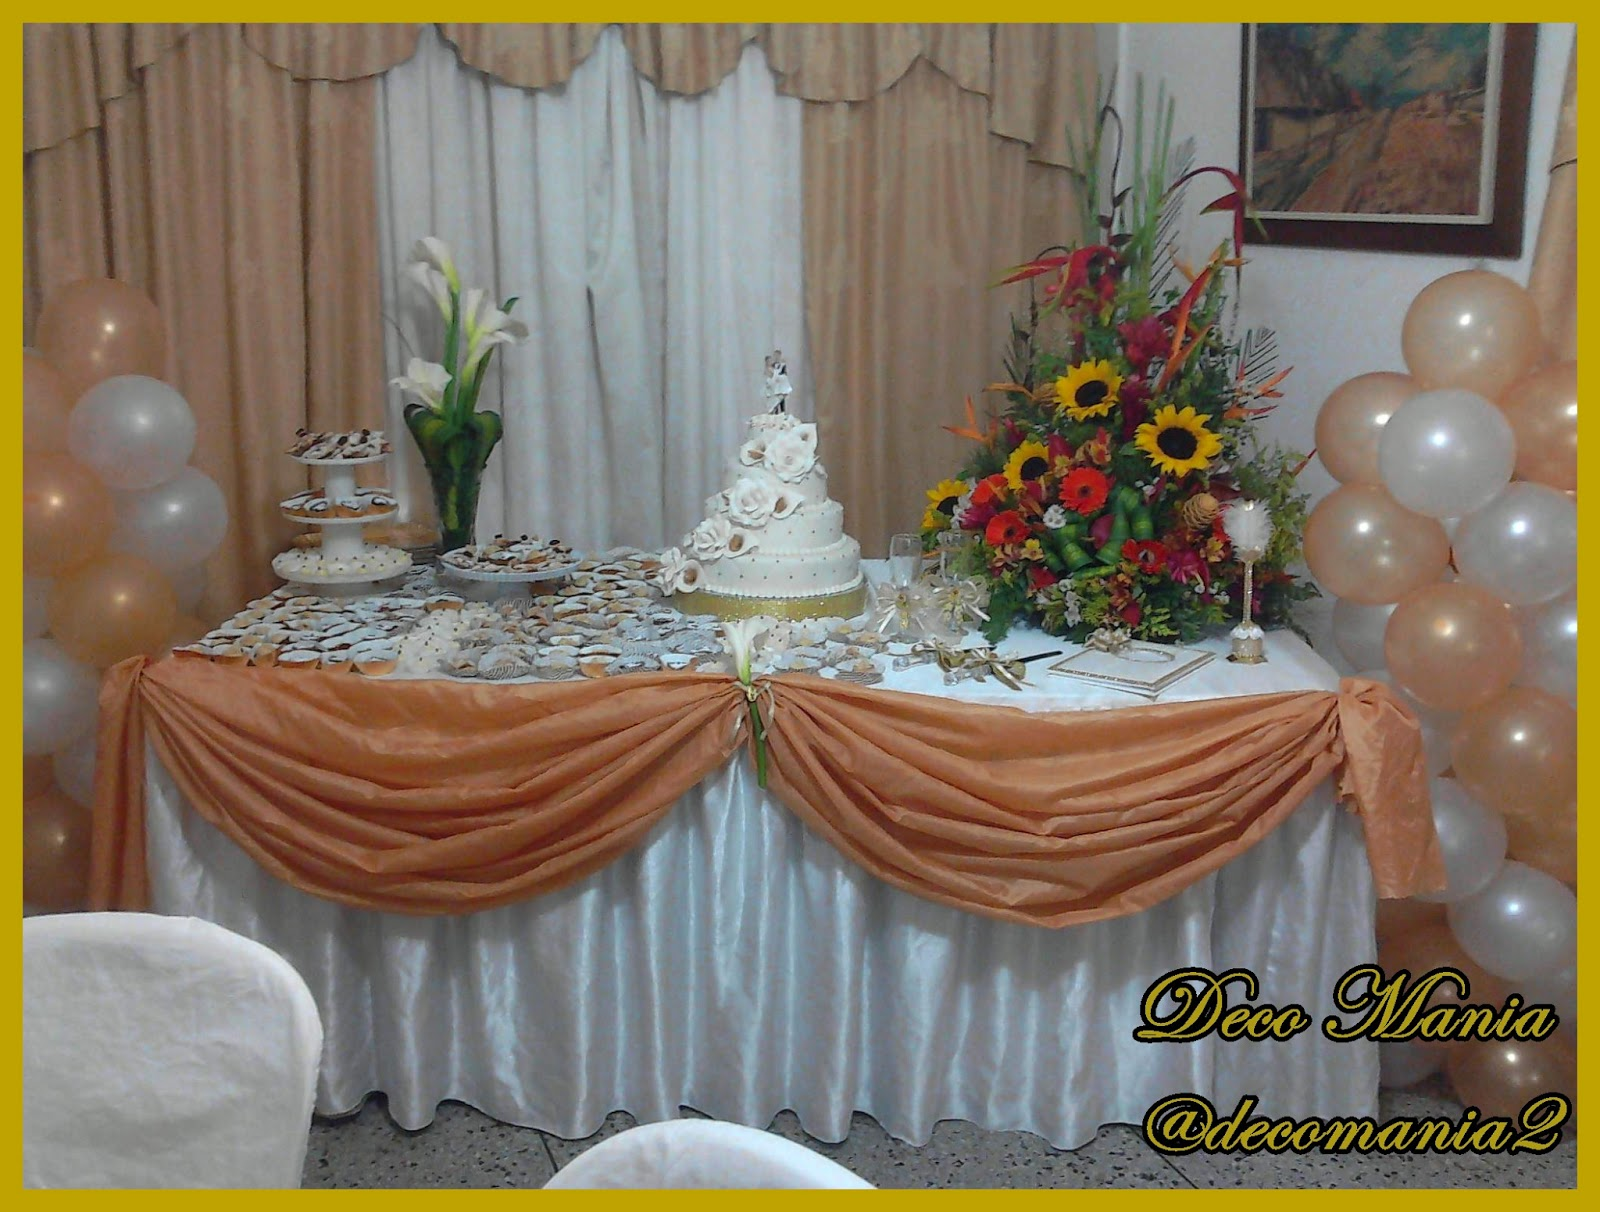 Decoracion matrimonio civil - Decoracion bodas civiles ...